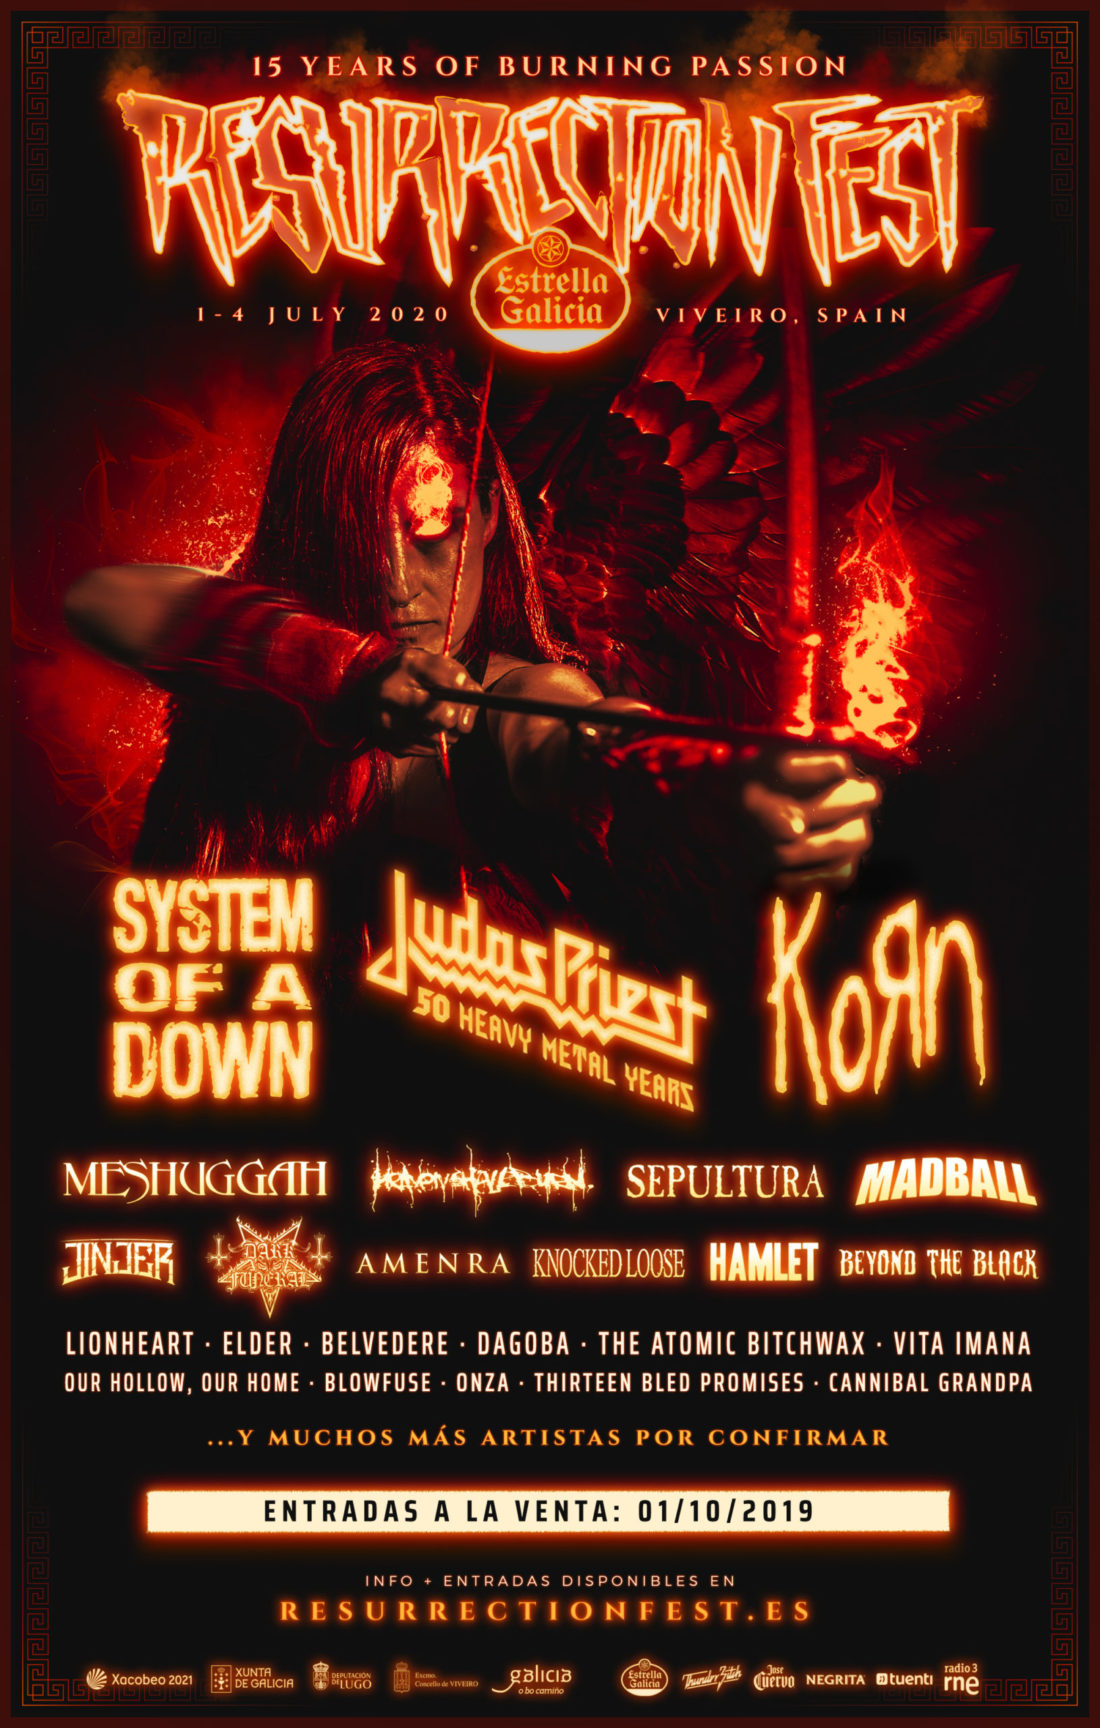 Judas Priest and KoRn join Resurrection Fest Estrella Galicia 2020 as headliners along with many more bands